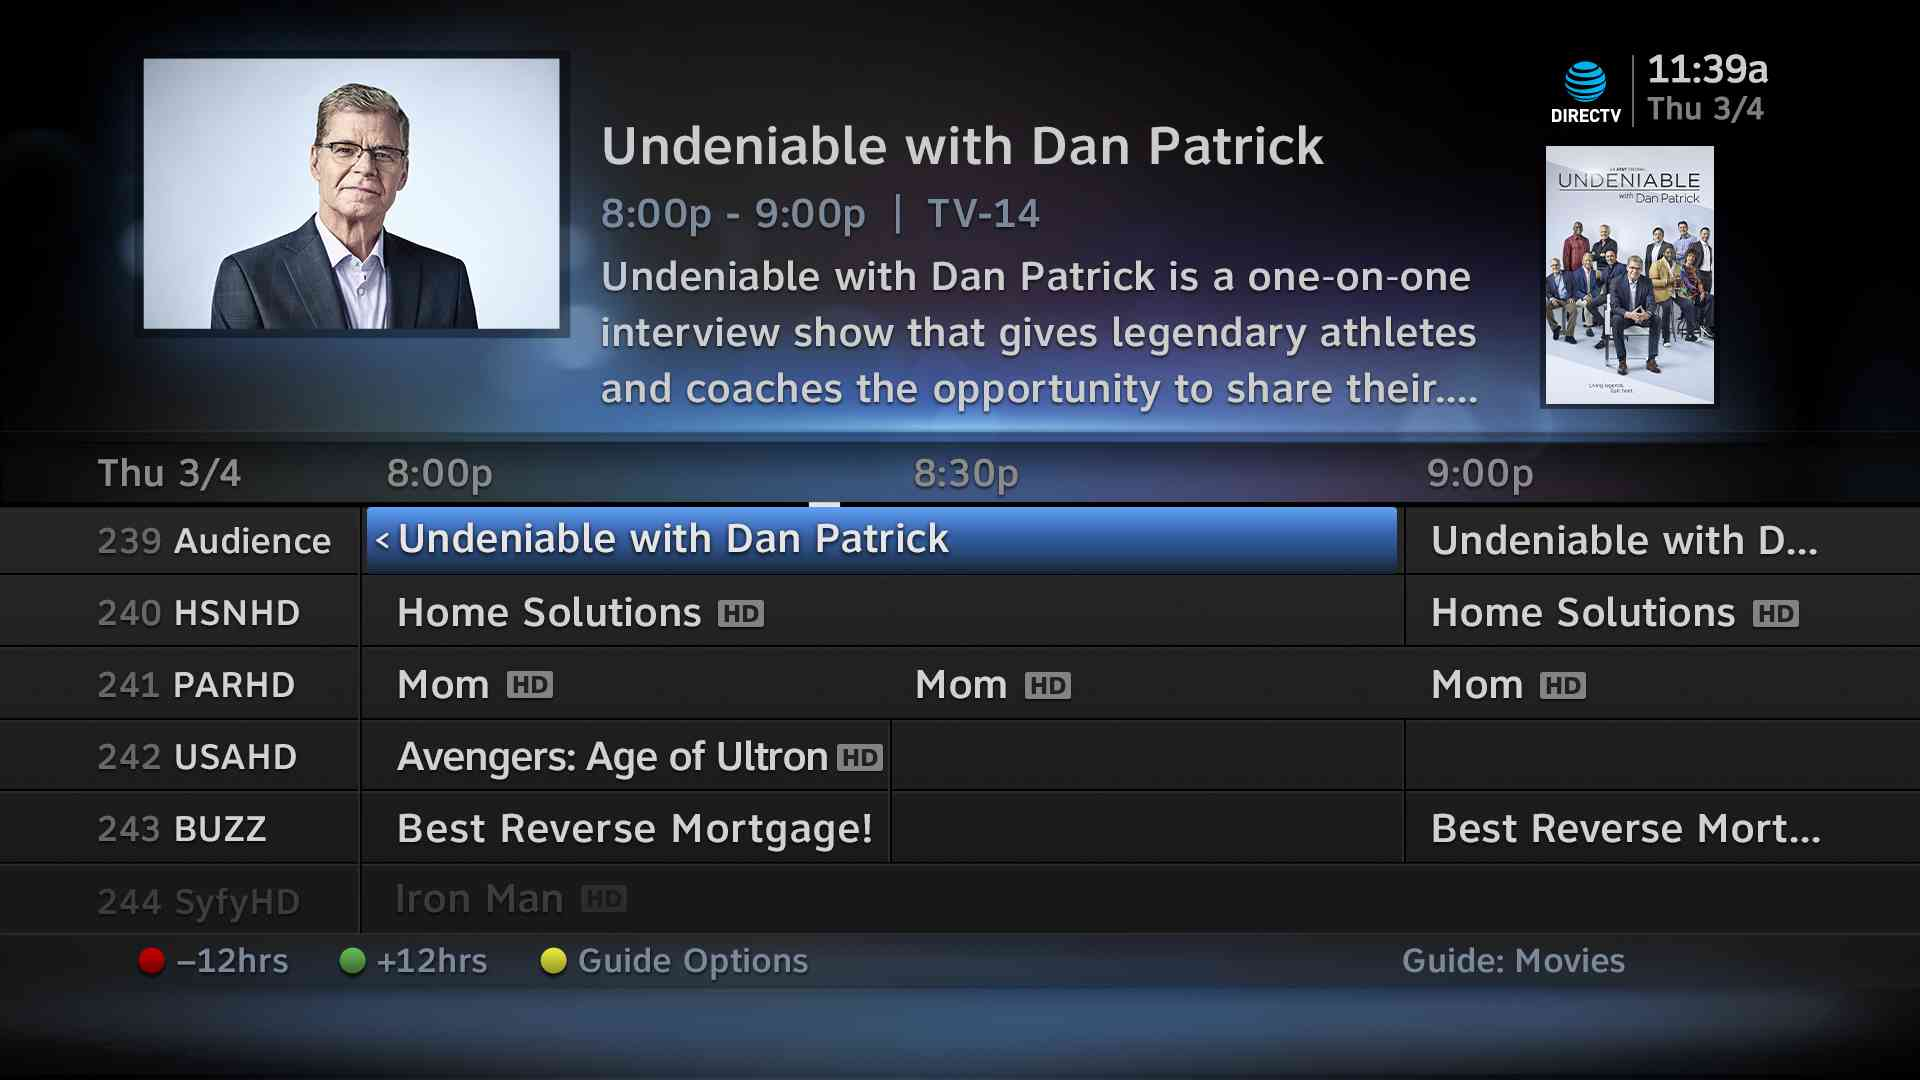 television guide showing Dan Patrick